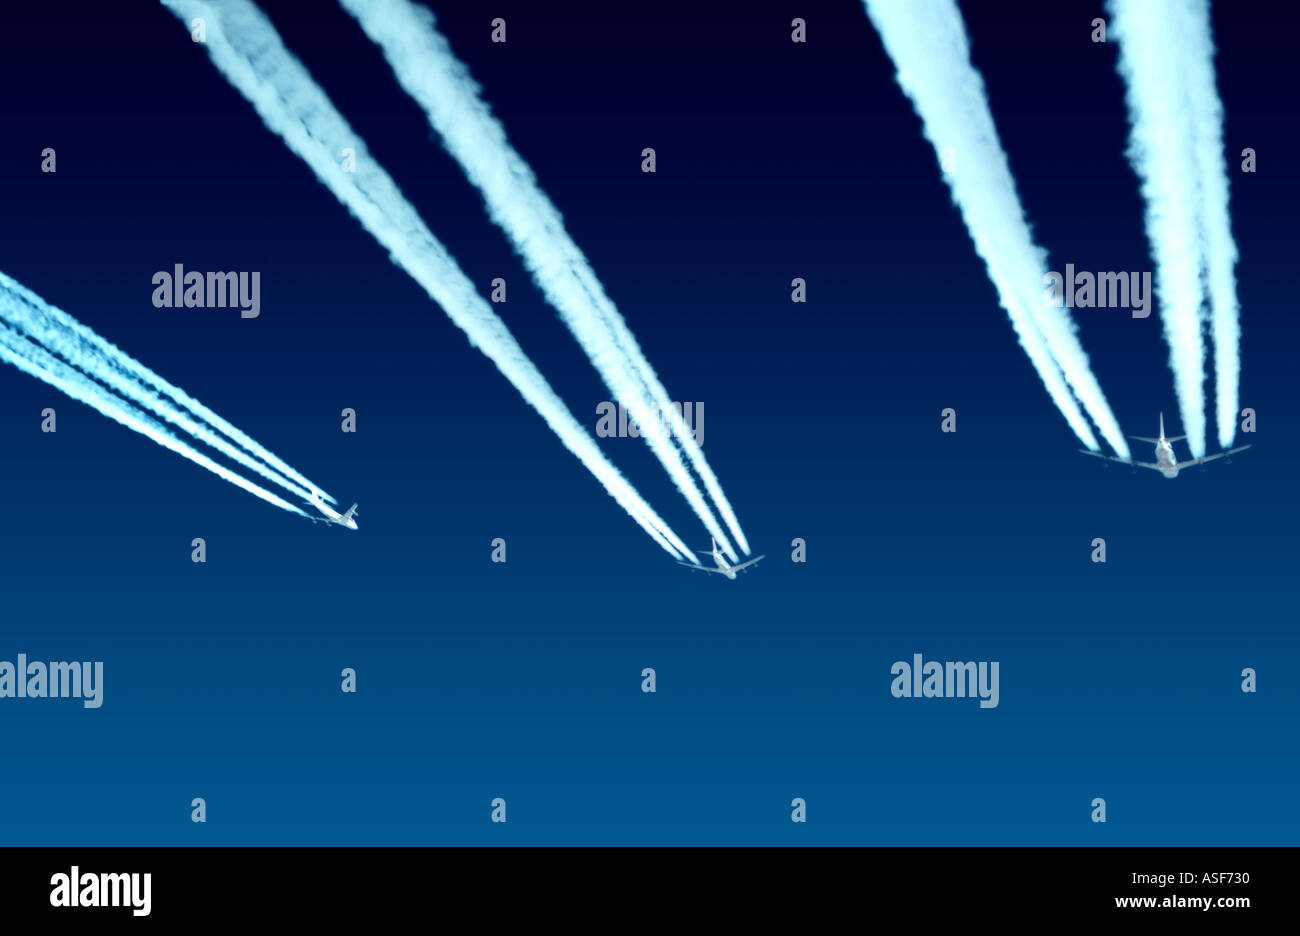 Jumbo jets flying at high altitude - Stock Image